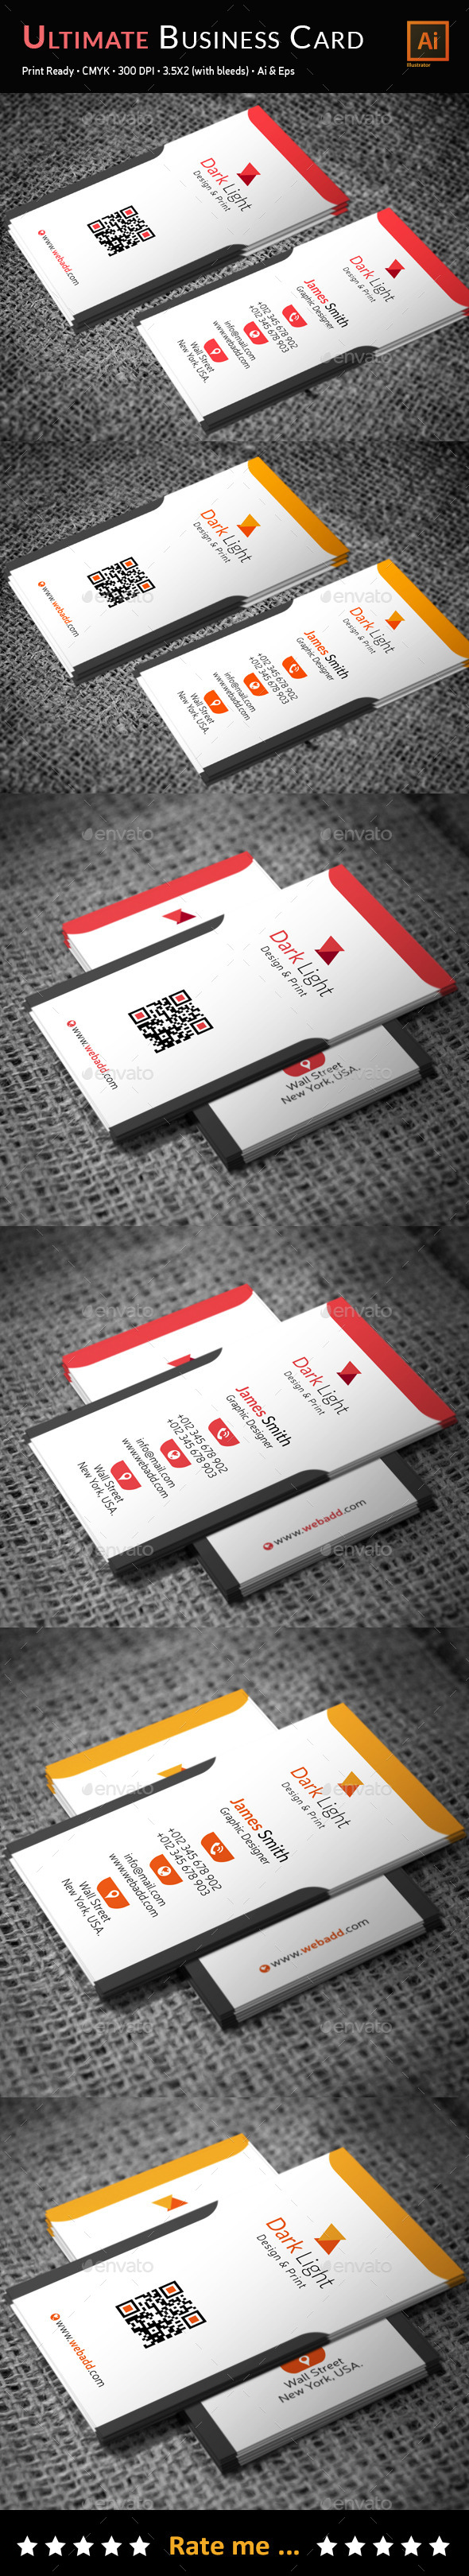 Ultimate Business Card - Business Cards Print Templates